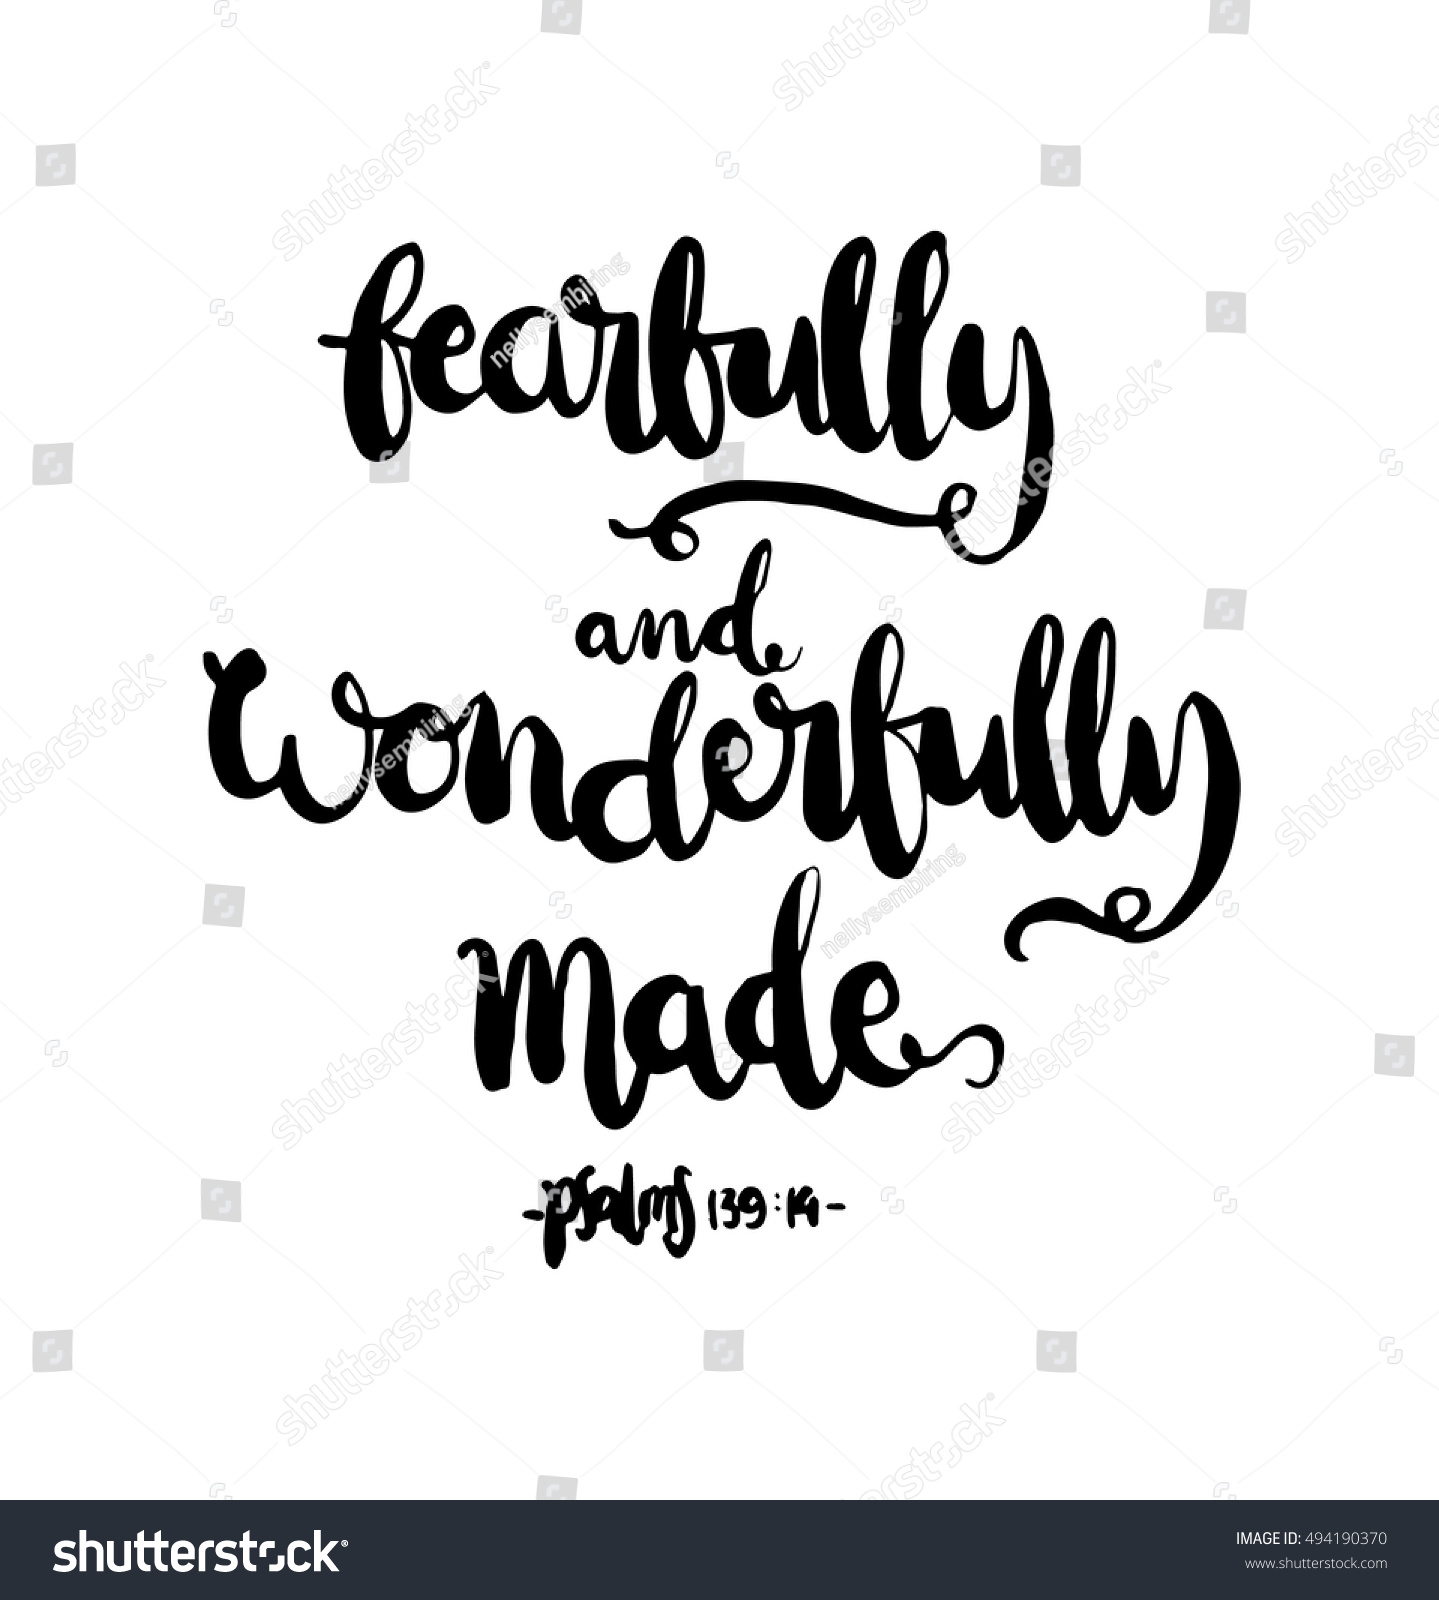 Fearfully and wonderfully made hand lettered quote